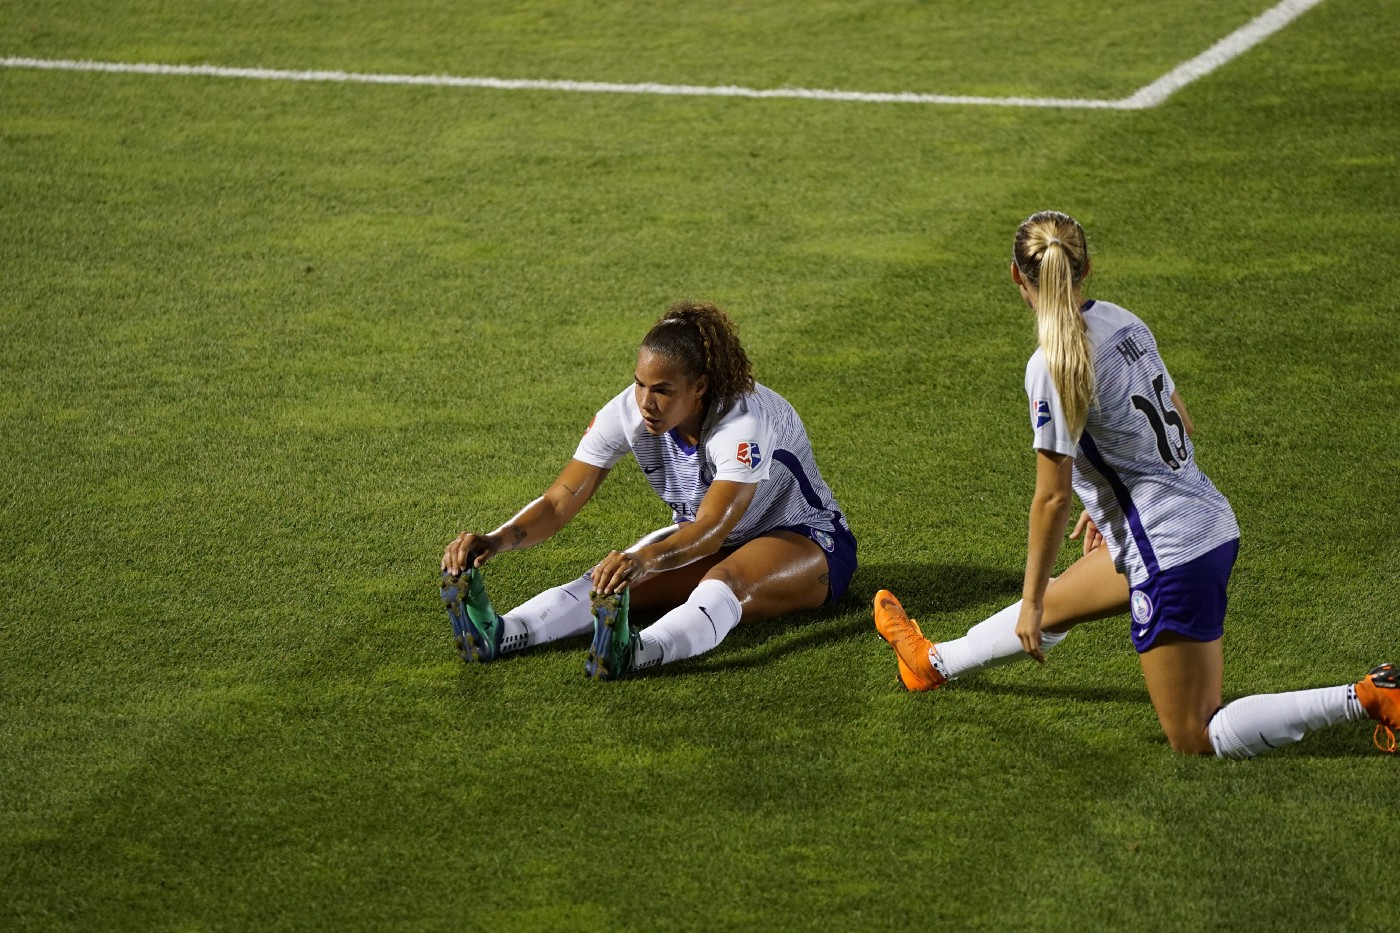 Two soccer players on the field doing preparatory stretches before the match